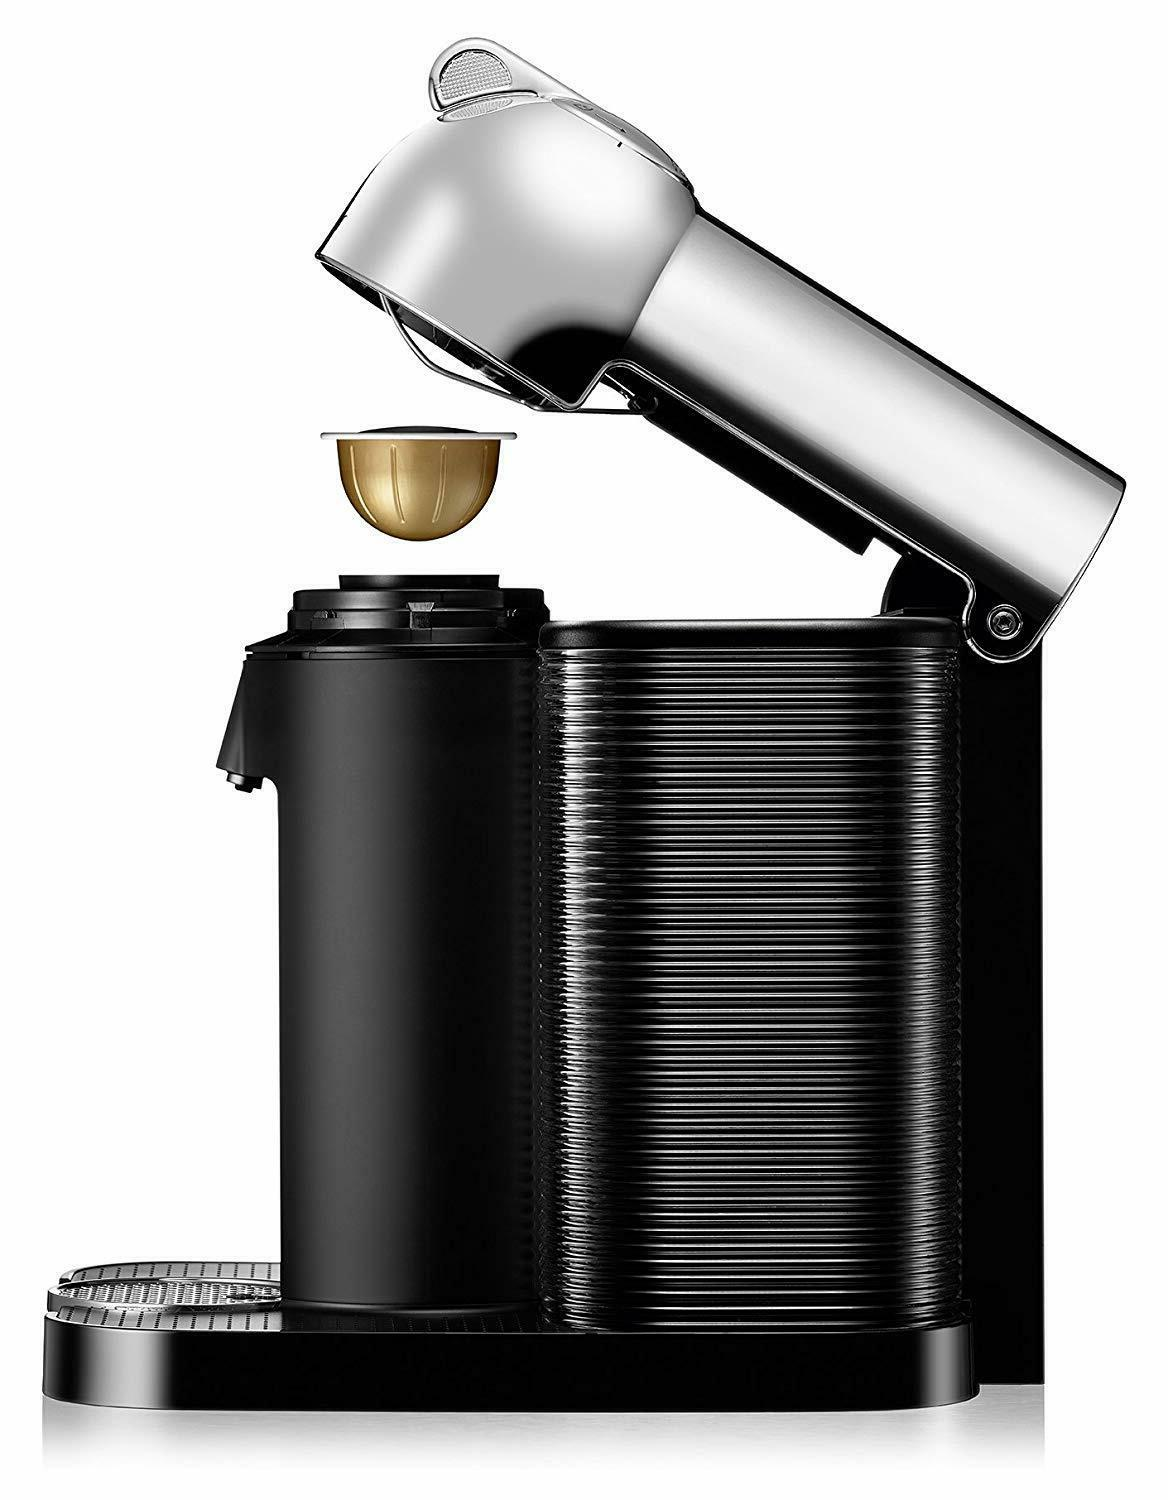 New Nespresso Coffee and Machine by Breville Chrome